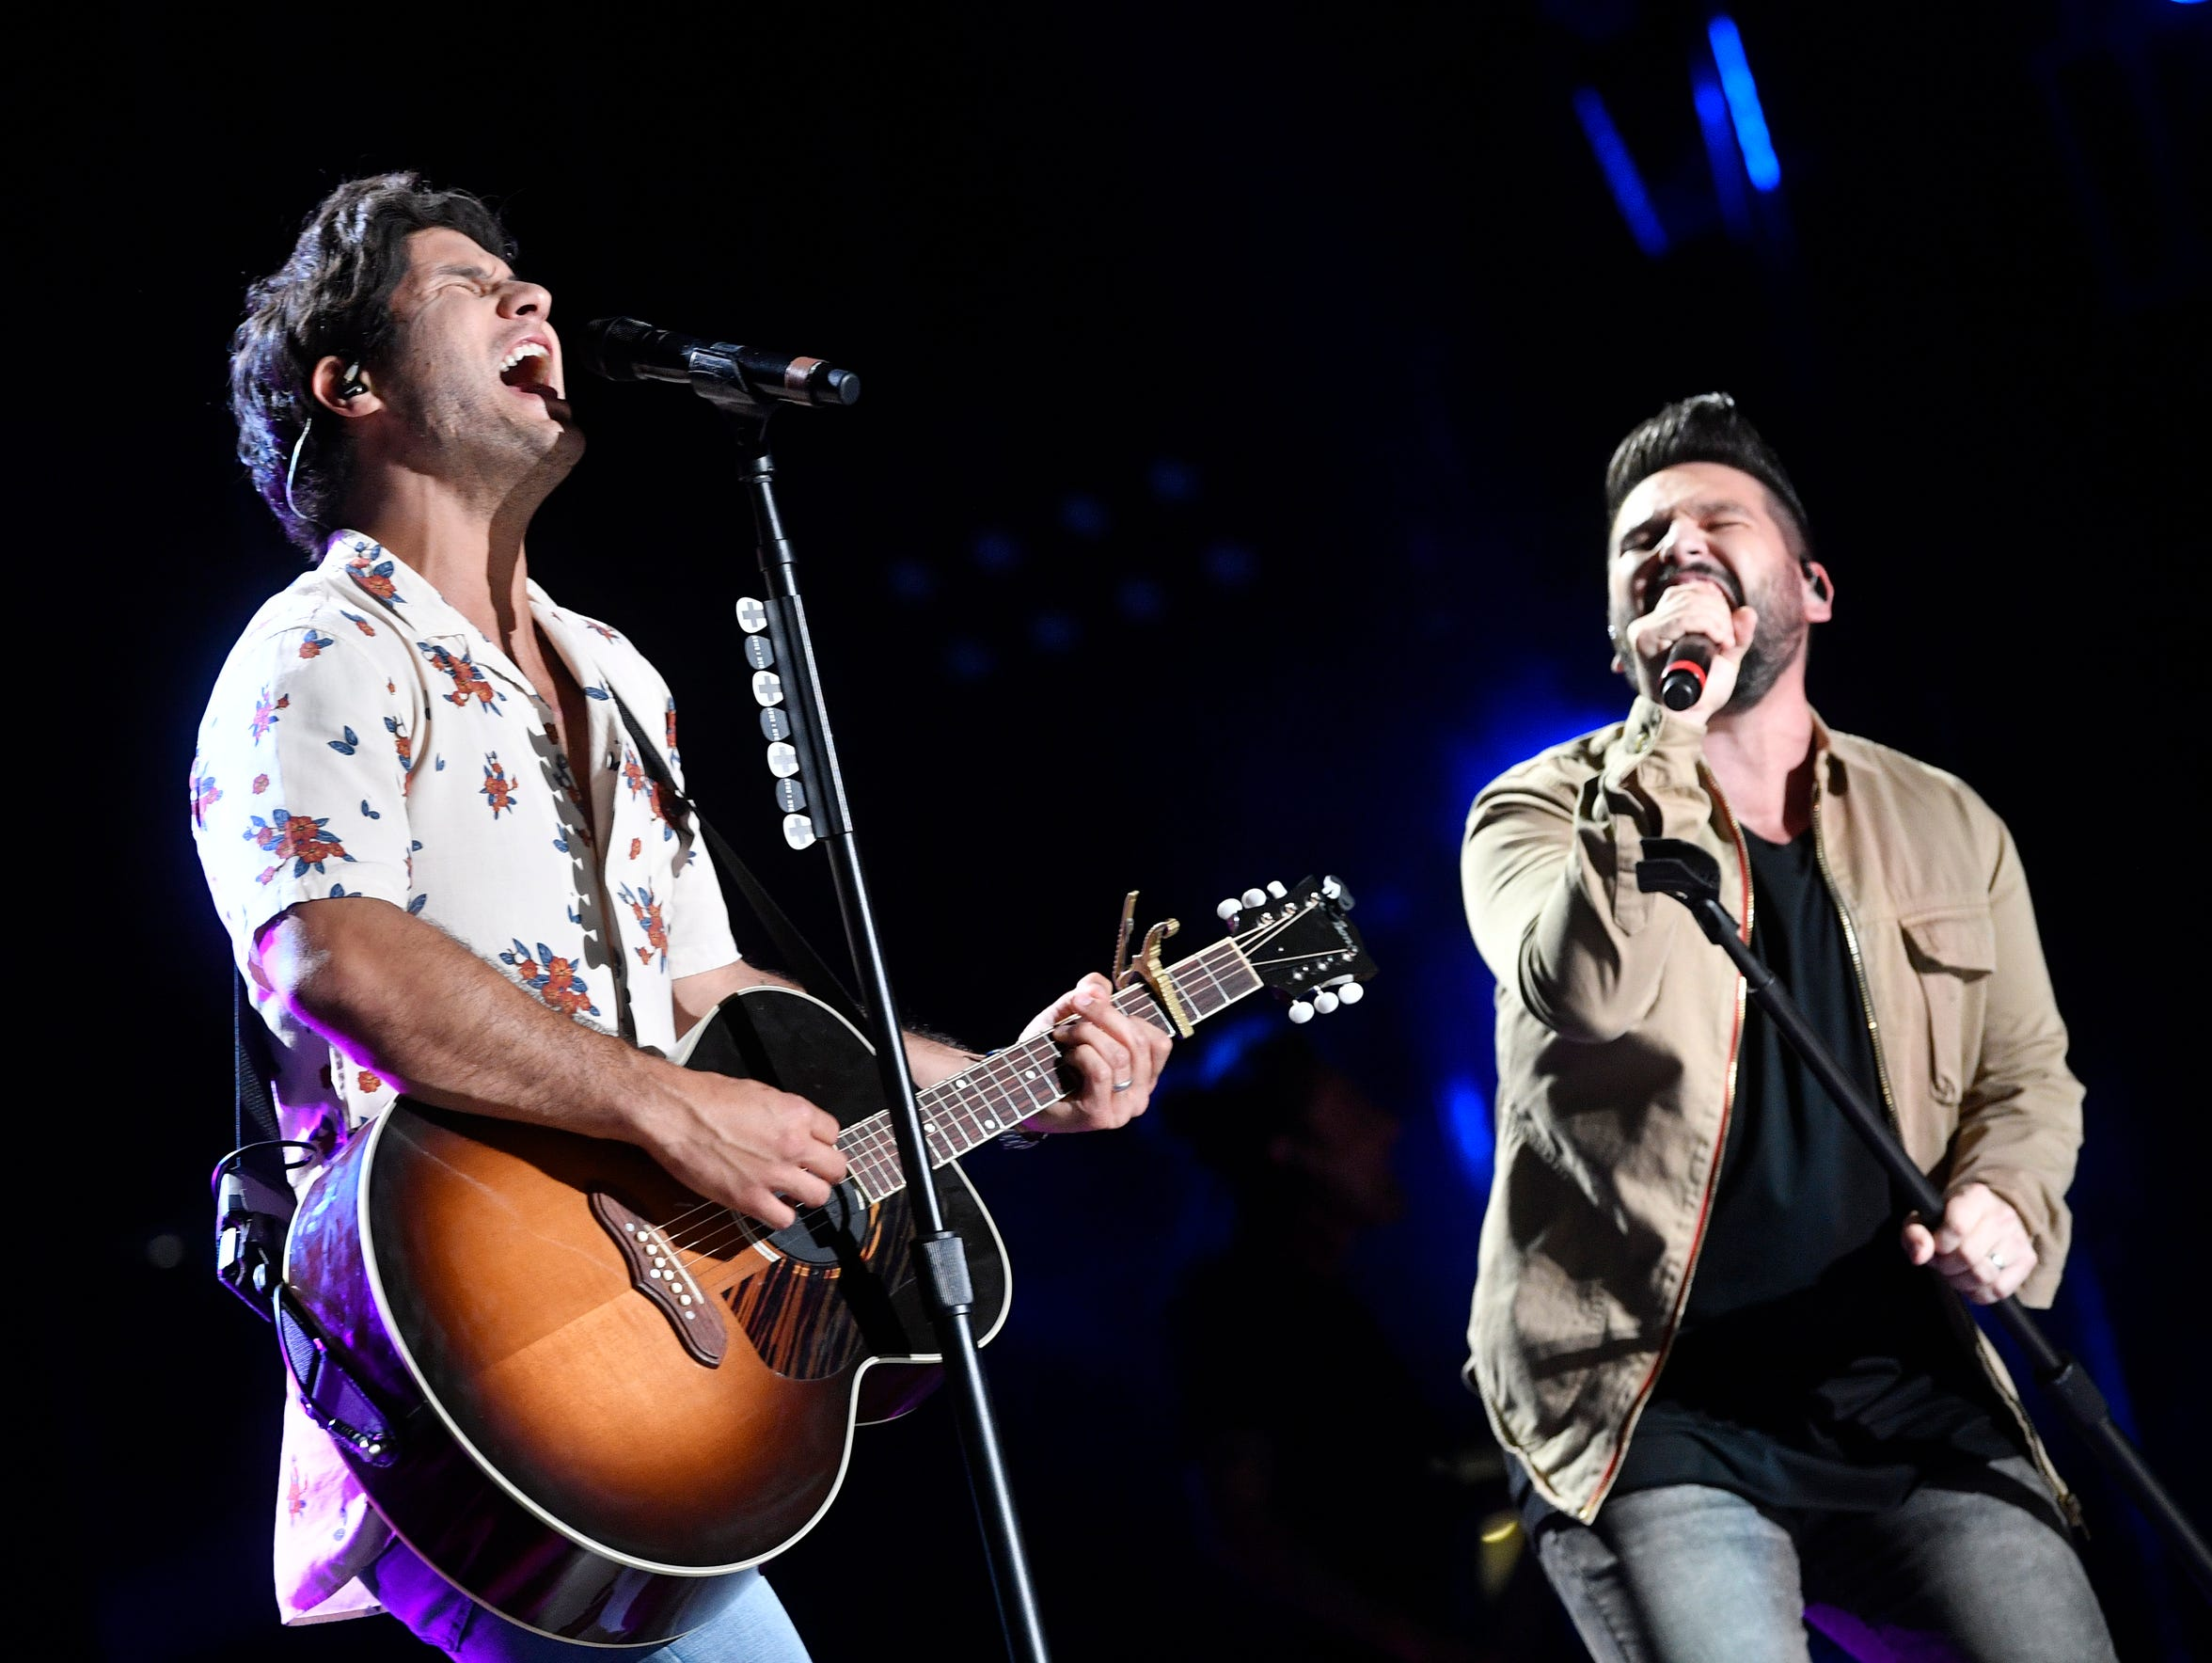 Dan + Shay perform at the CMA Music Festival on June